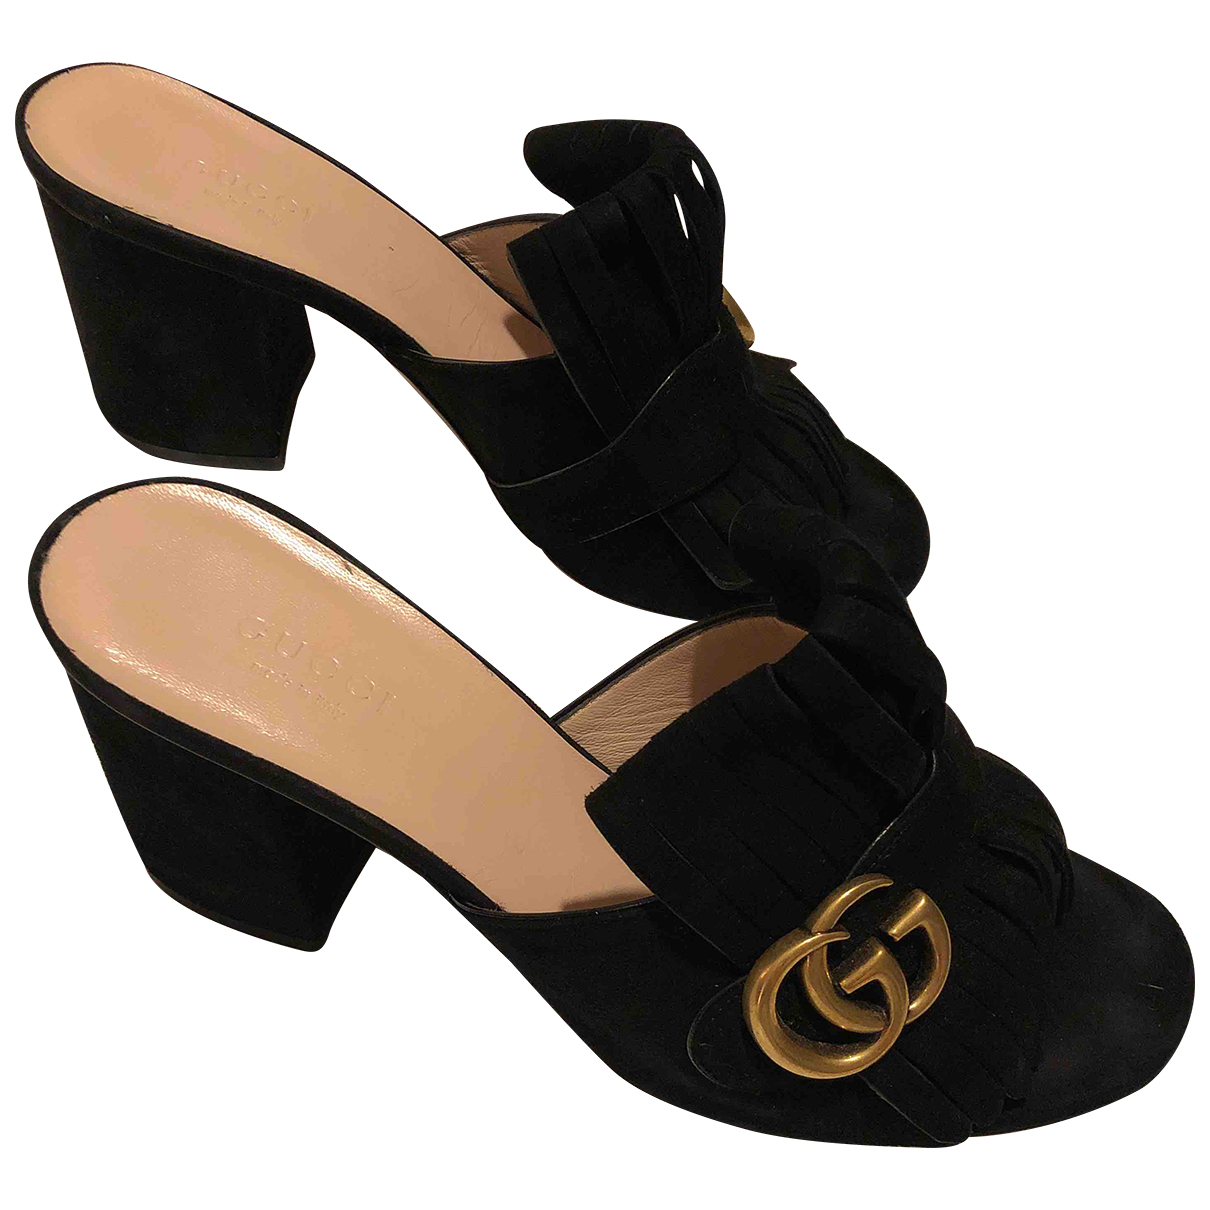 Autre Marque N Black Suede Mules & Clogs for Women 38 EU